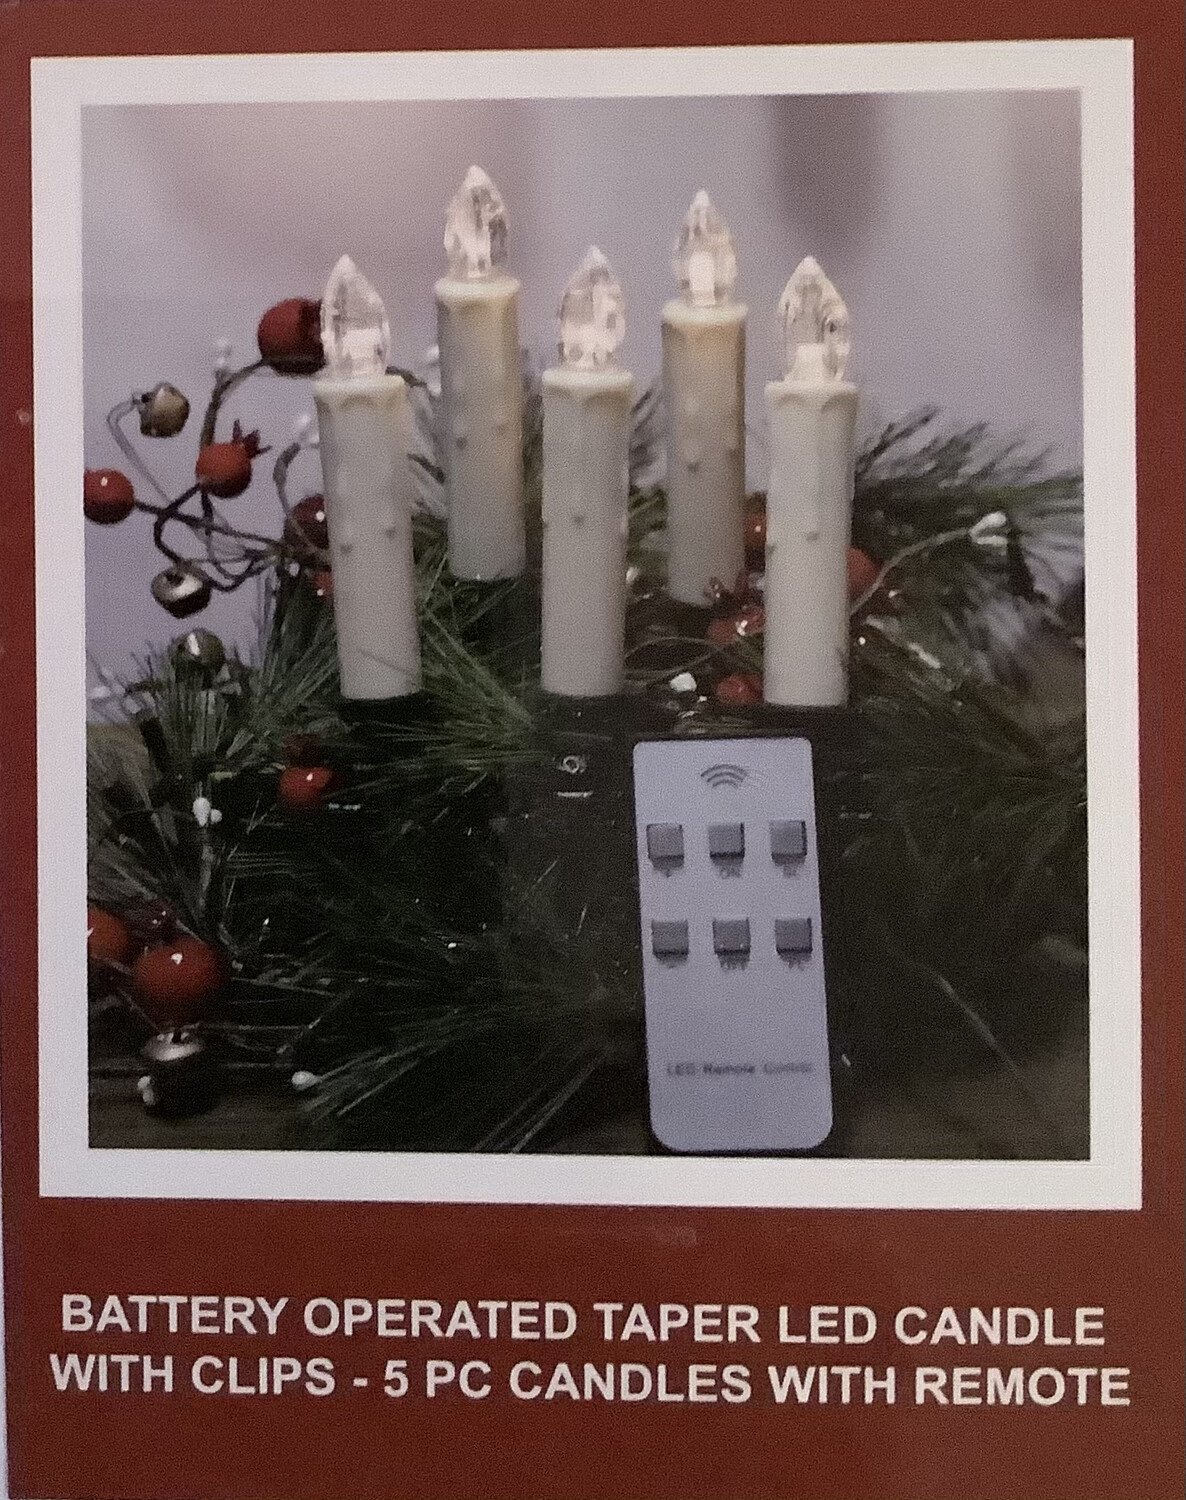 5 PC Battery Taper LED Candle With Clips